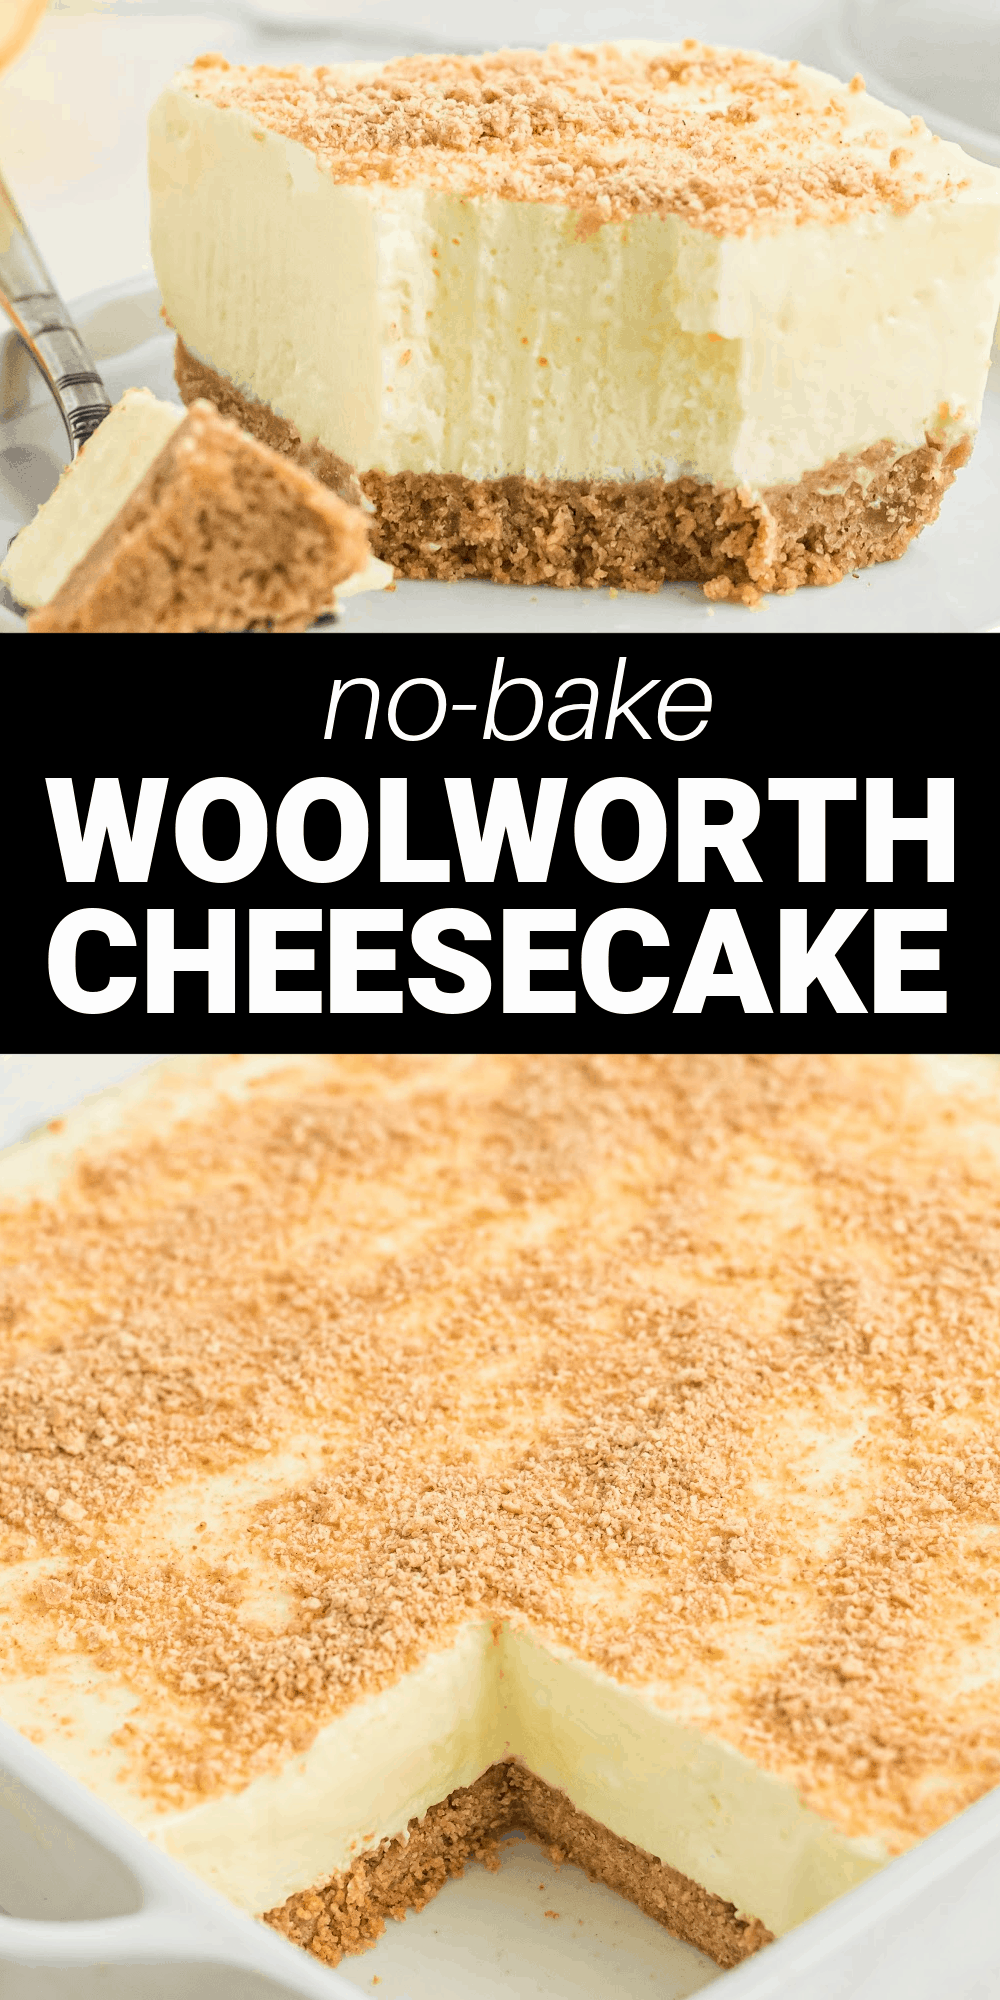 This classic Woolworth Cheesecake is a light and fluffy cheesecake with a hint of lemon flavor. Made with Jell-O, whipped cream, cream cheese, and a graham cracker crust, it has an amazing creamy texture and taste.